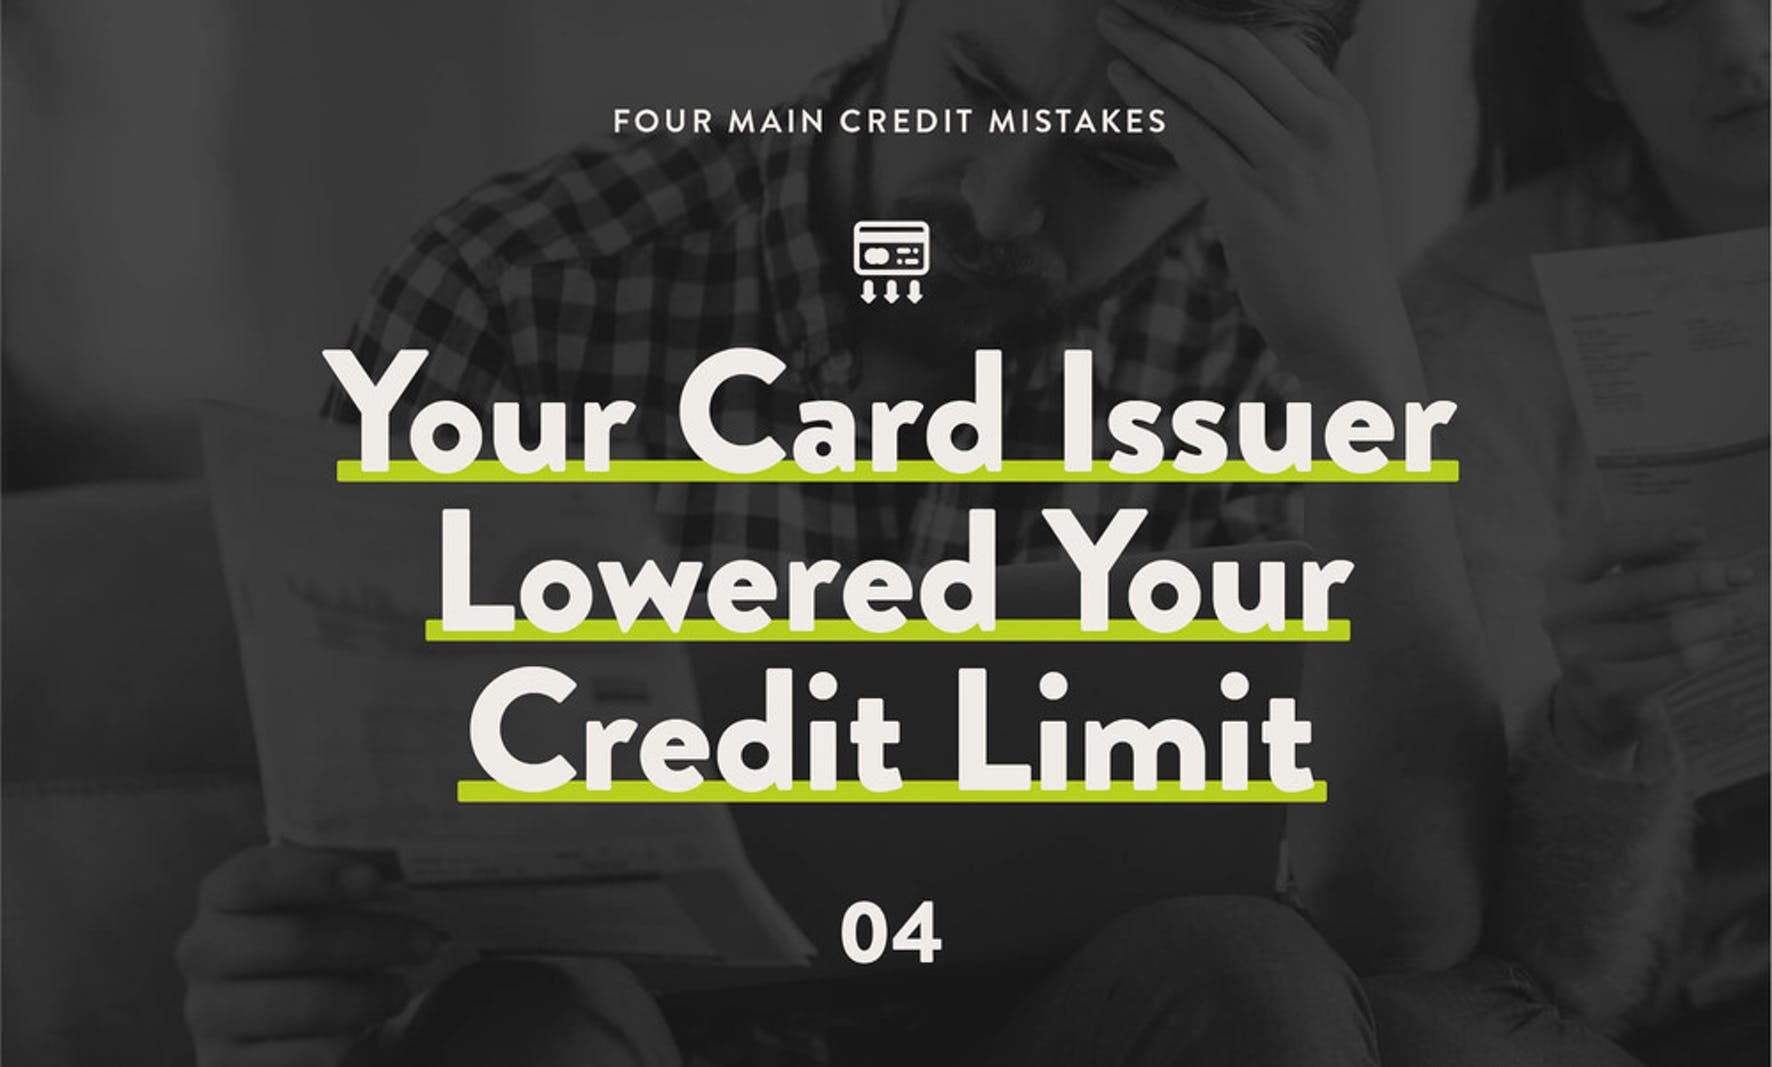 4 main credit mistakes: your card issuer lowered your credit limit